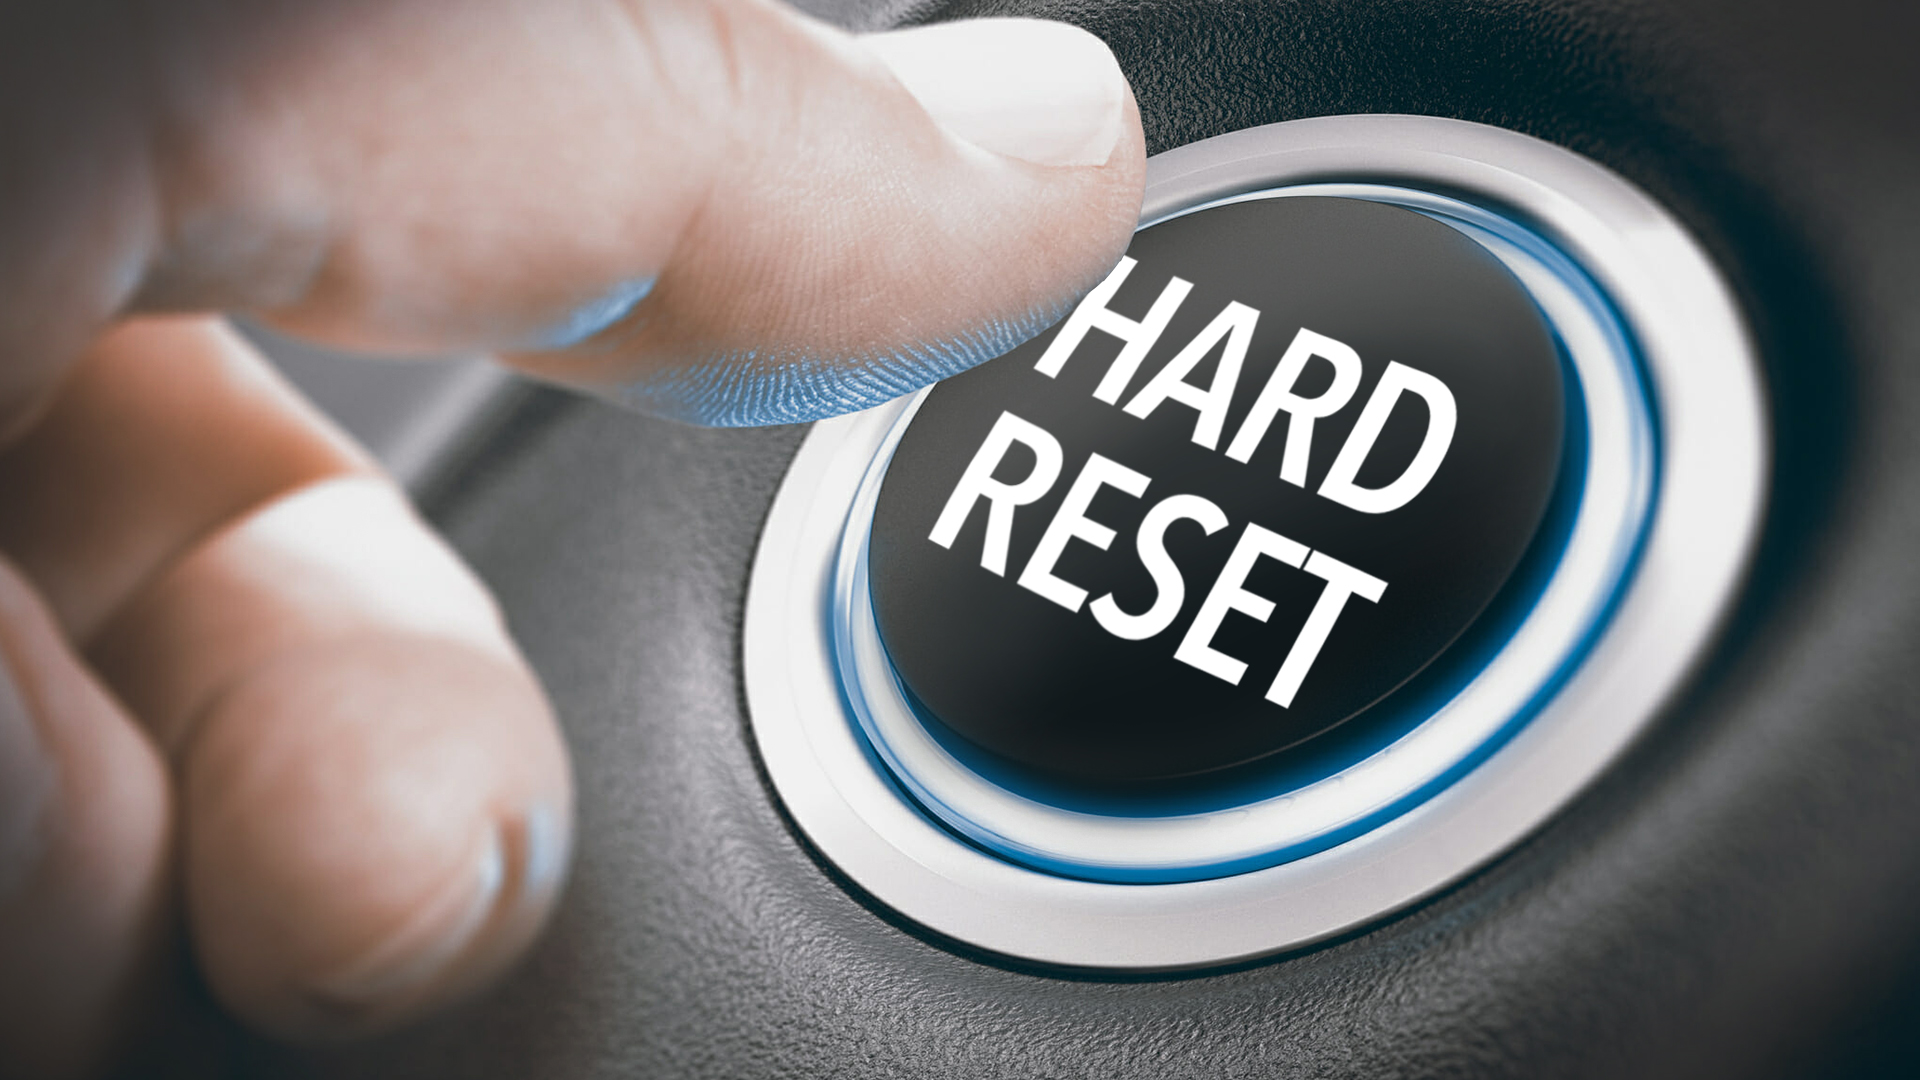 Hard Reset, a series about what the church of today should look like